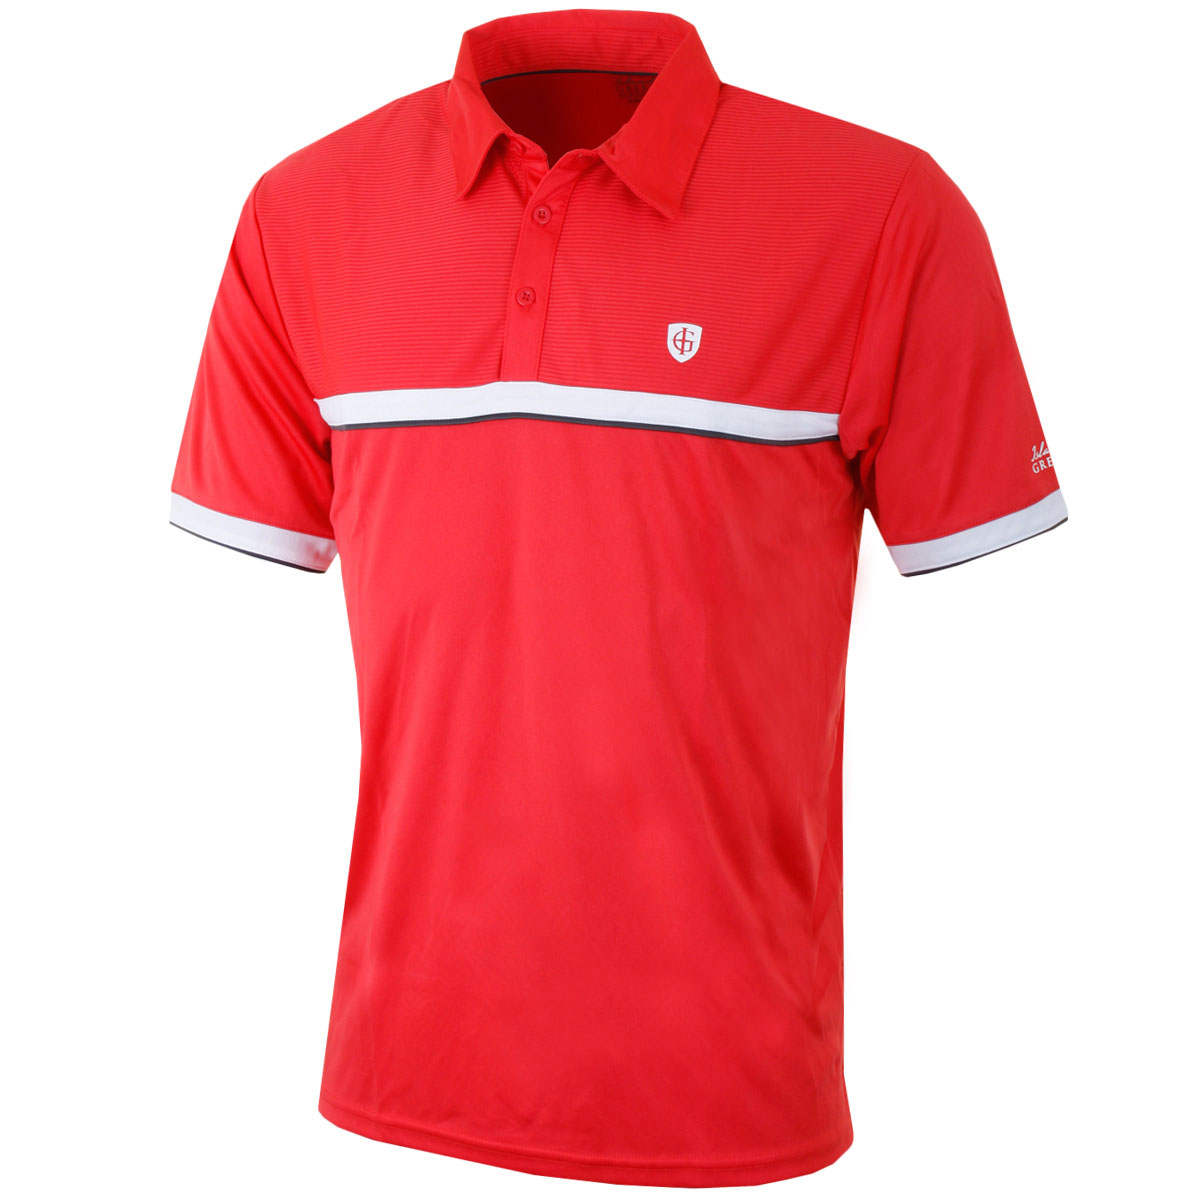 Island green 2016 mens igts1457 performance cool pass tech for Cool mens polo shirts